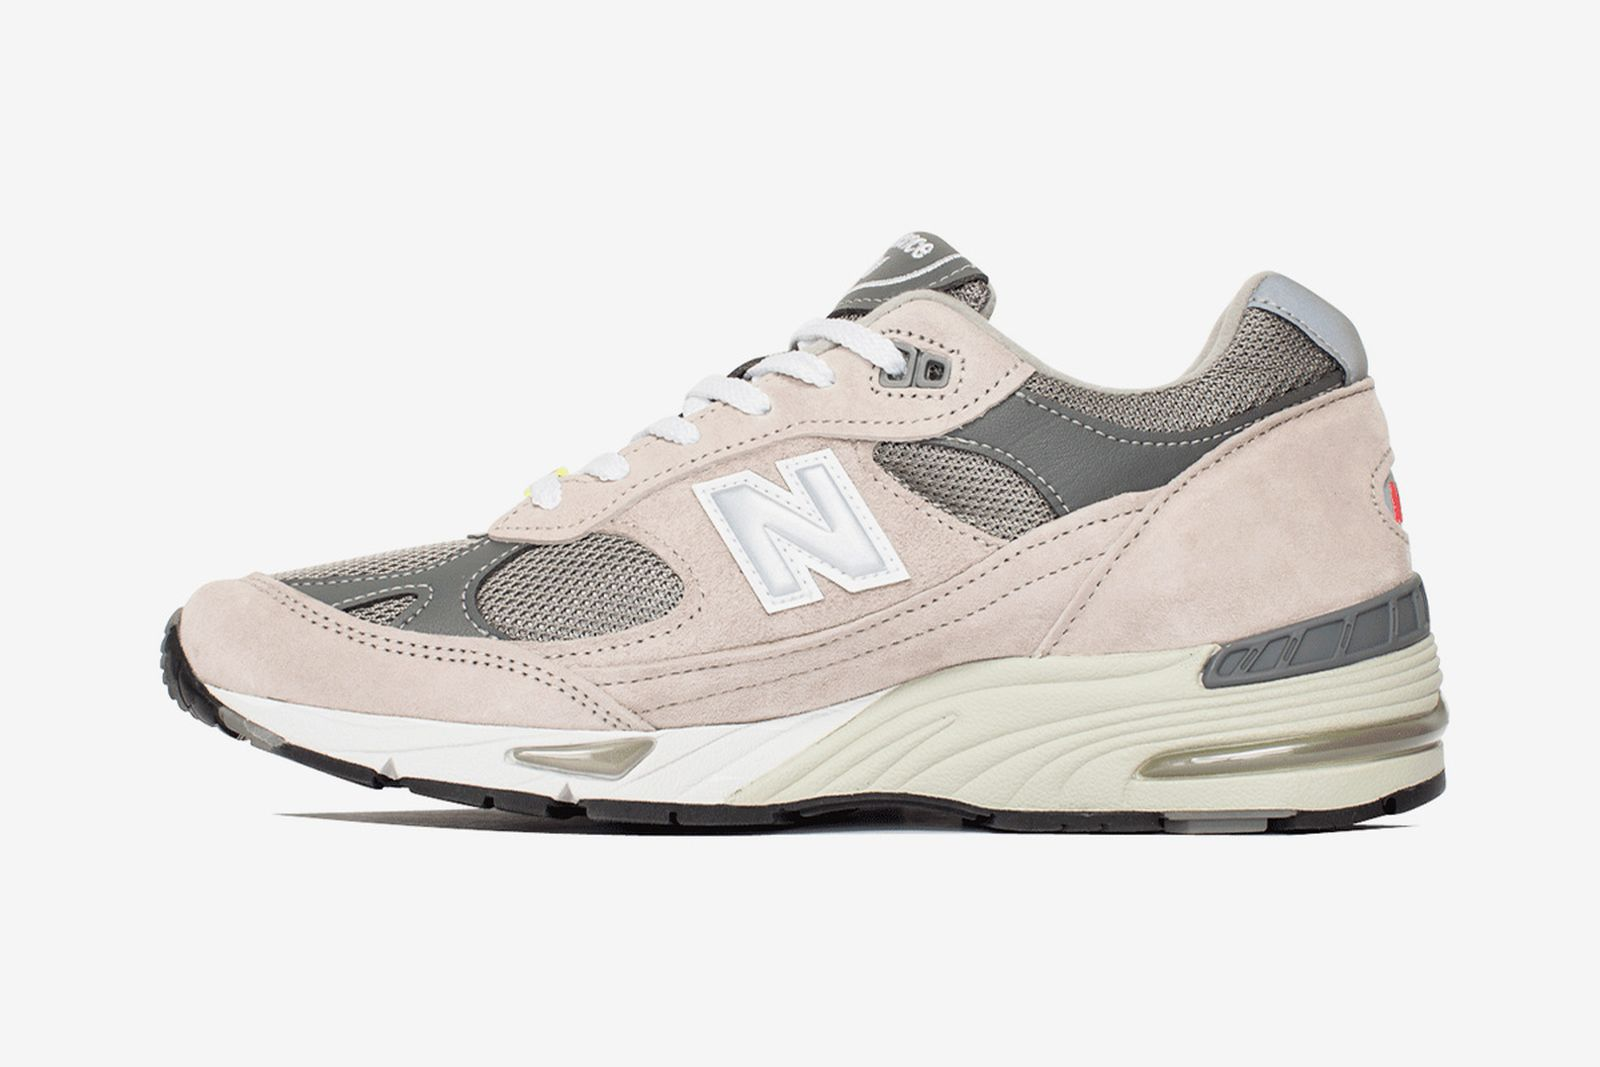 one-block-down-new-balance-991-release-date-price-02